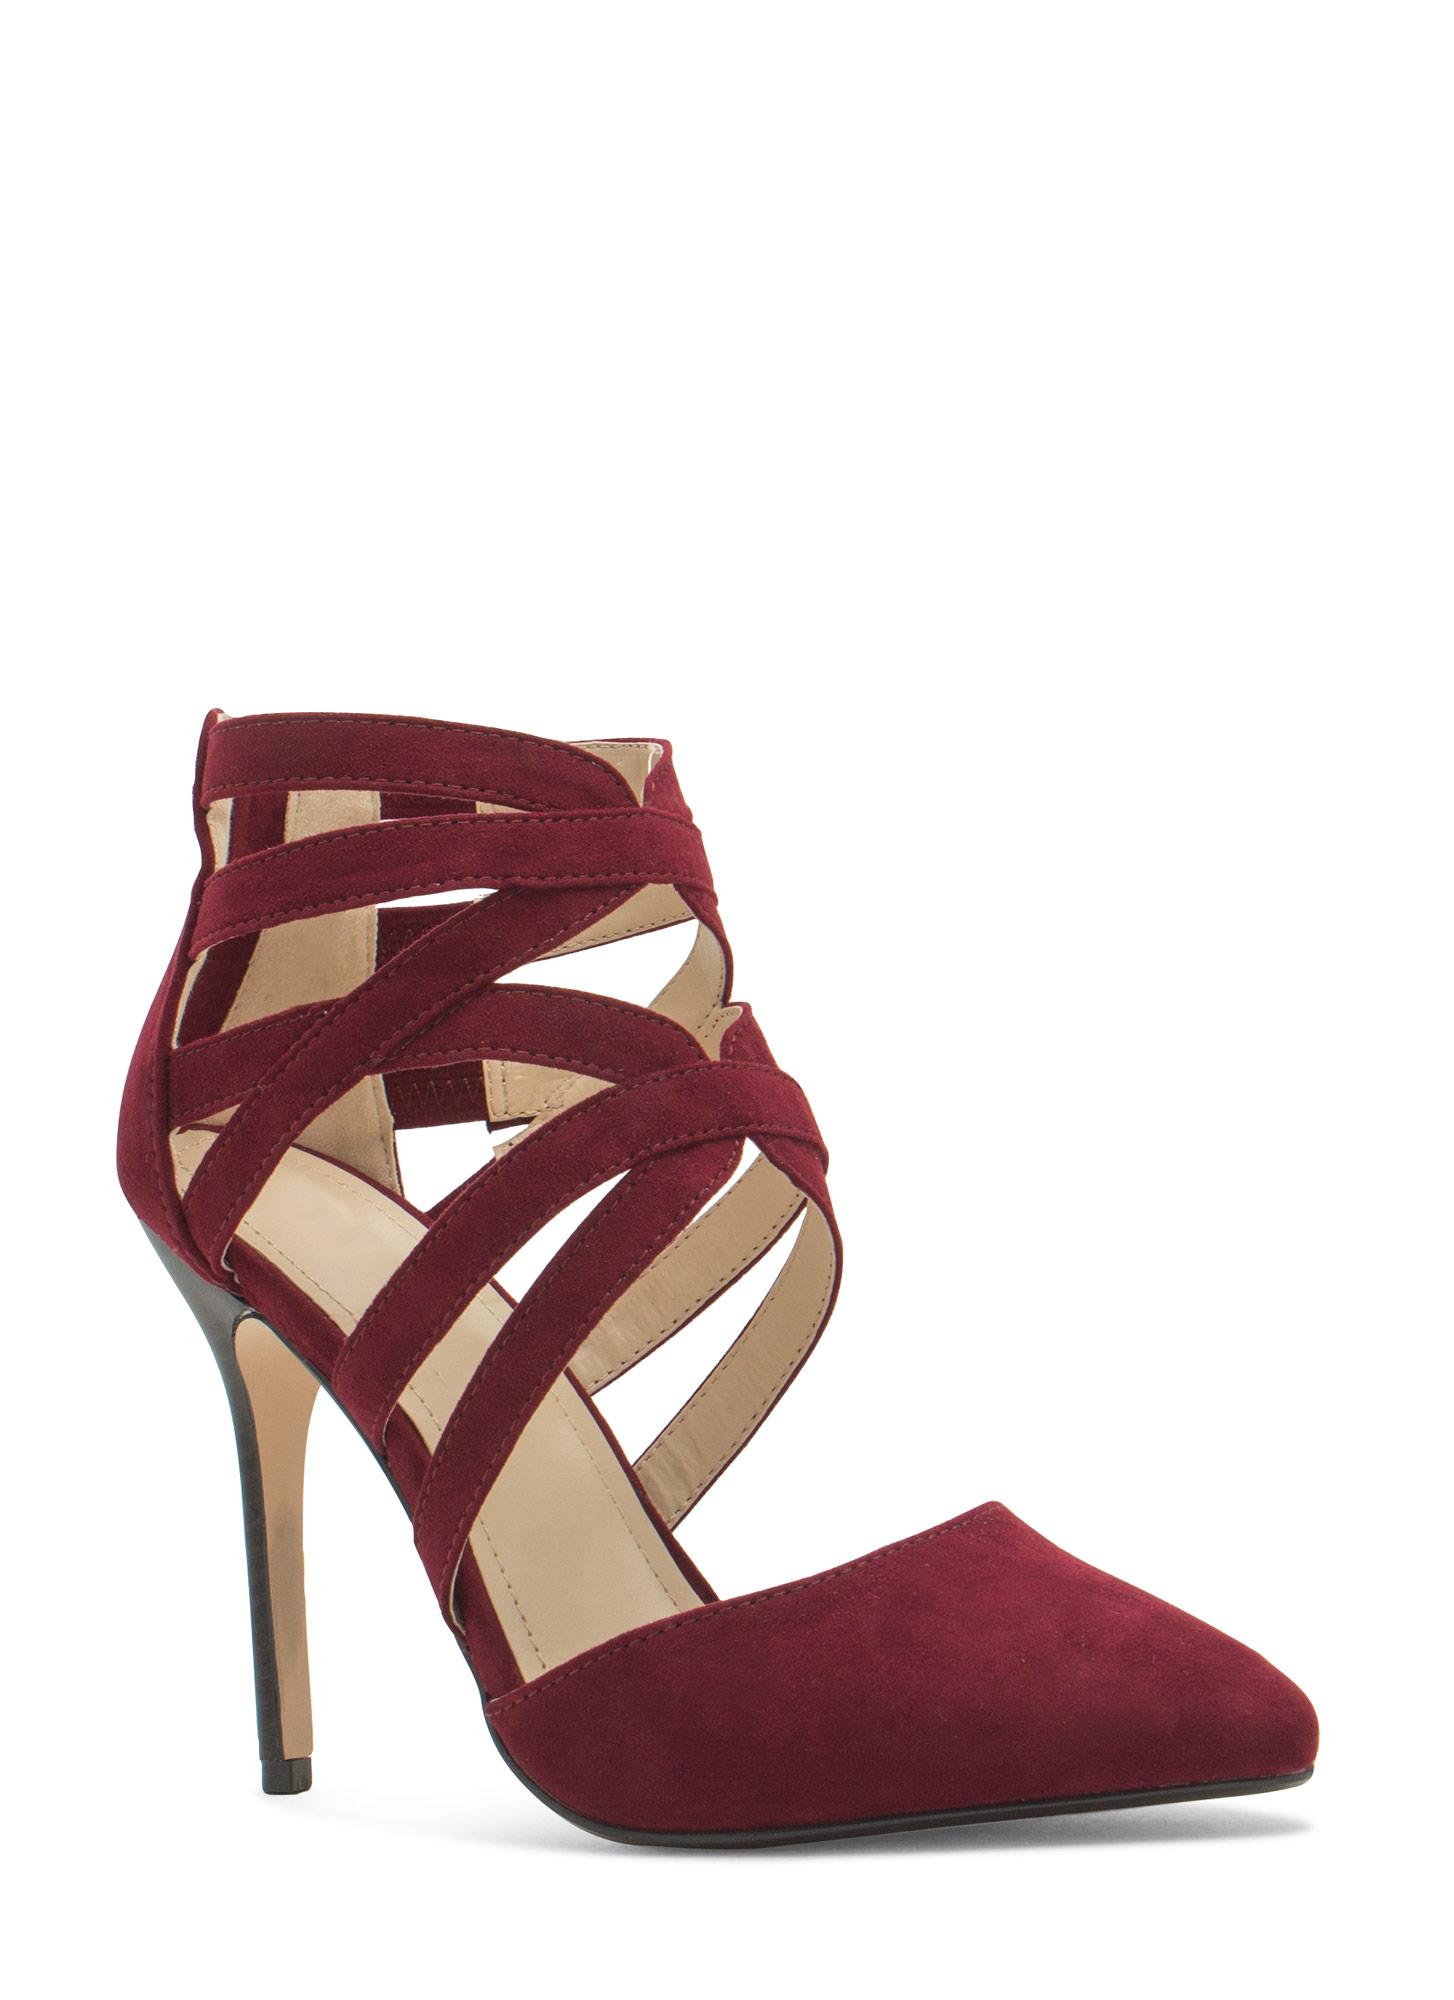 Caged Take Pointy Toe Heels OXBLOOD